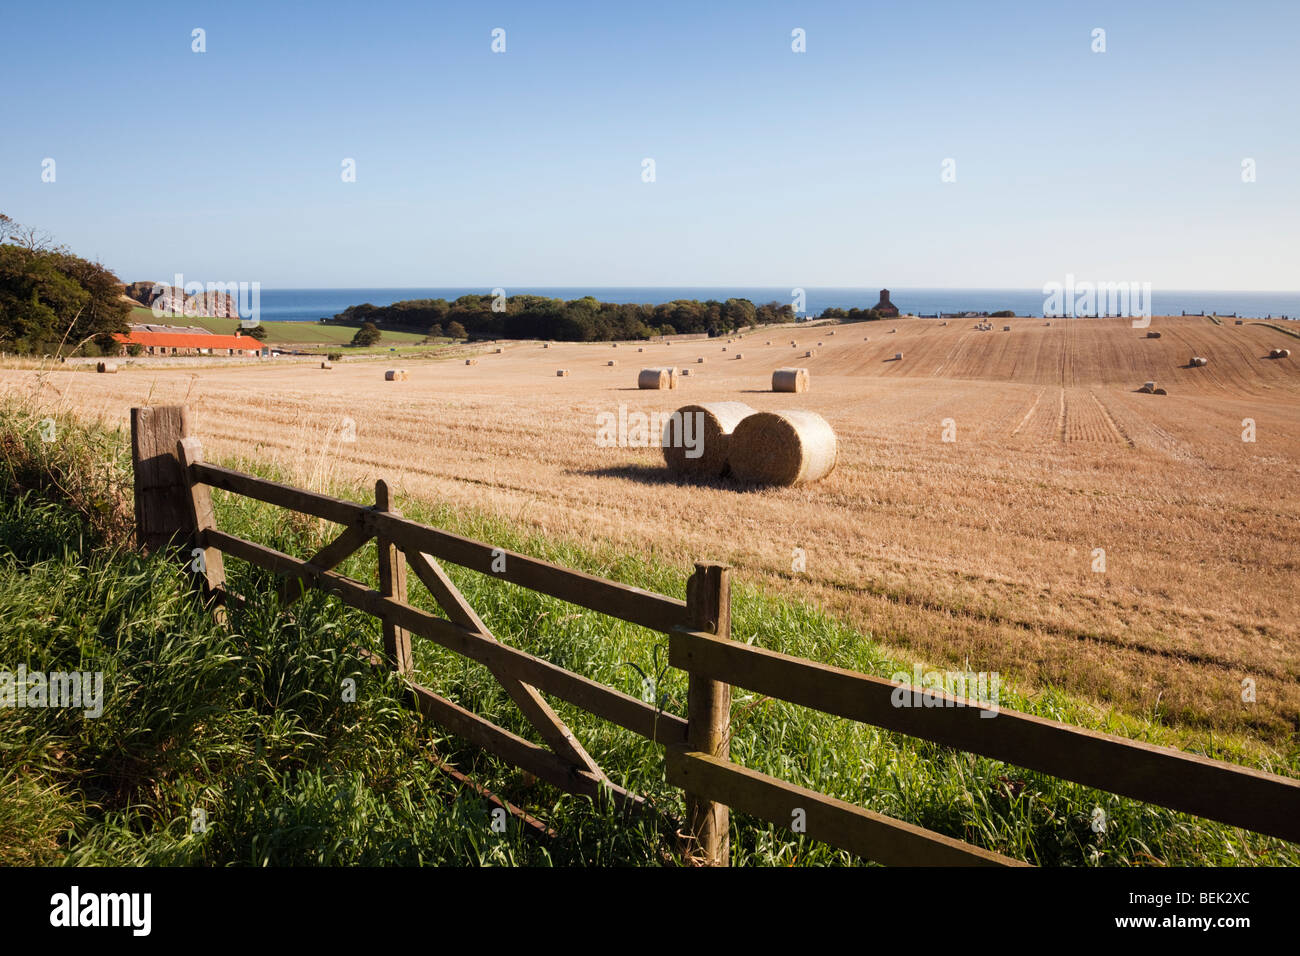 Fence with closed farm gate and field of round straw bales beyond on east coast in late summer. St Abbs Berwickshire - Stock Image